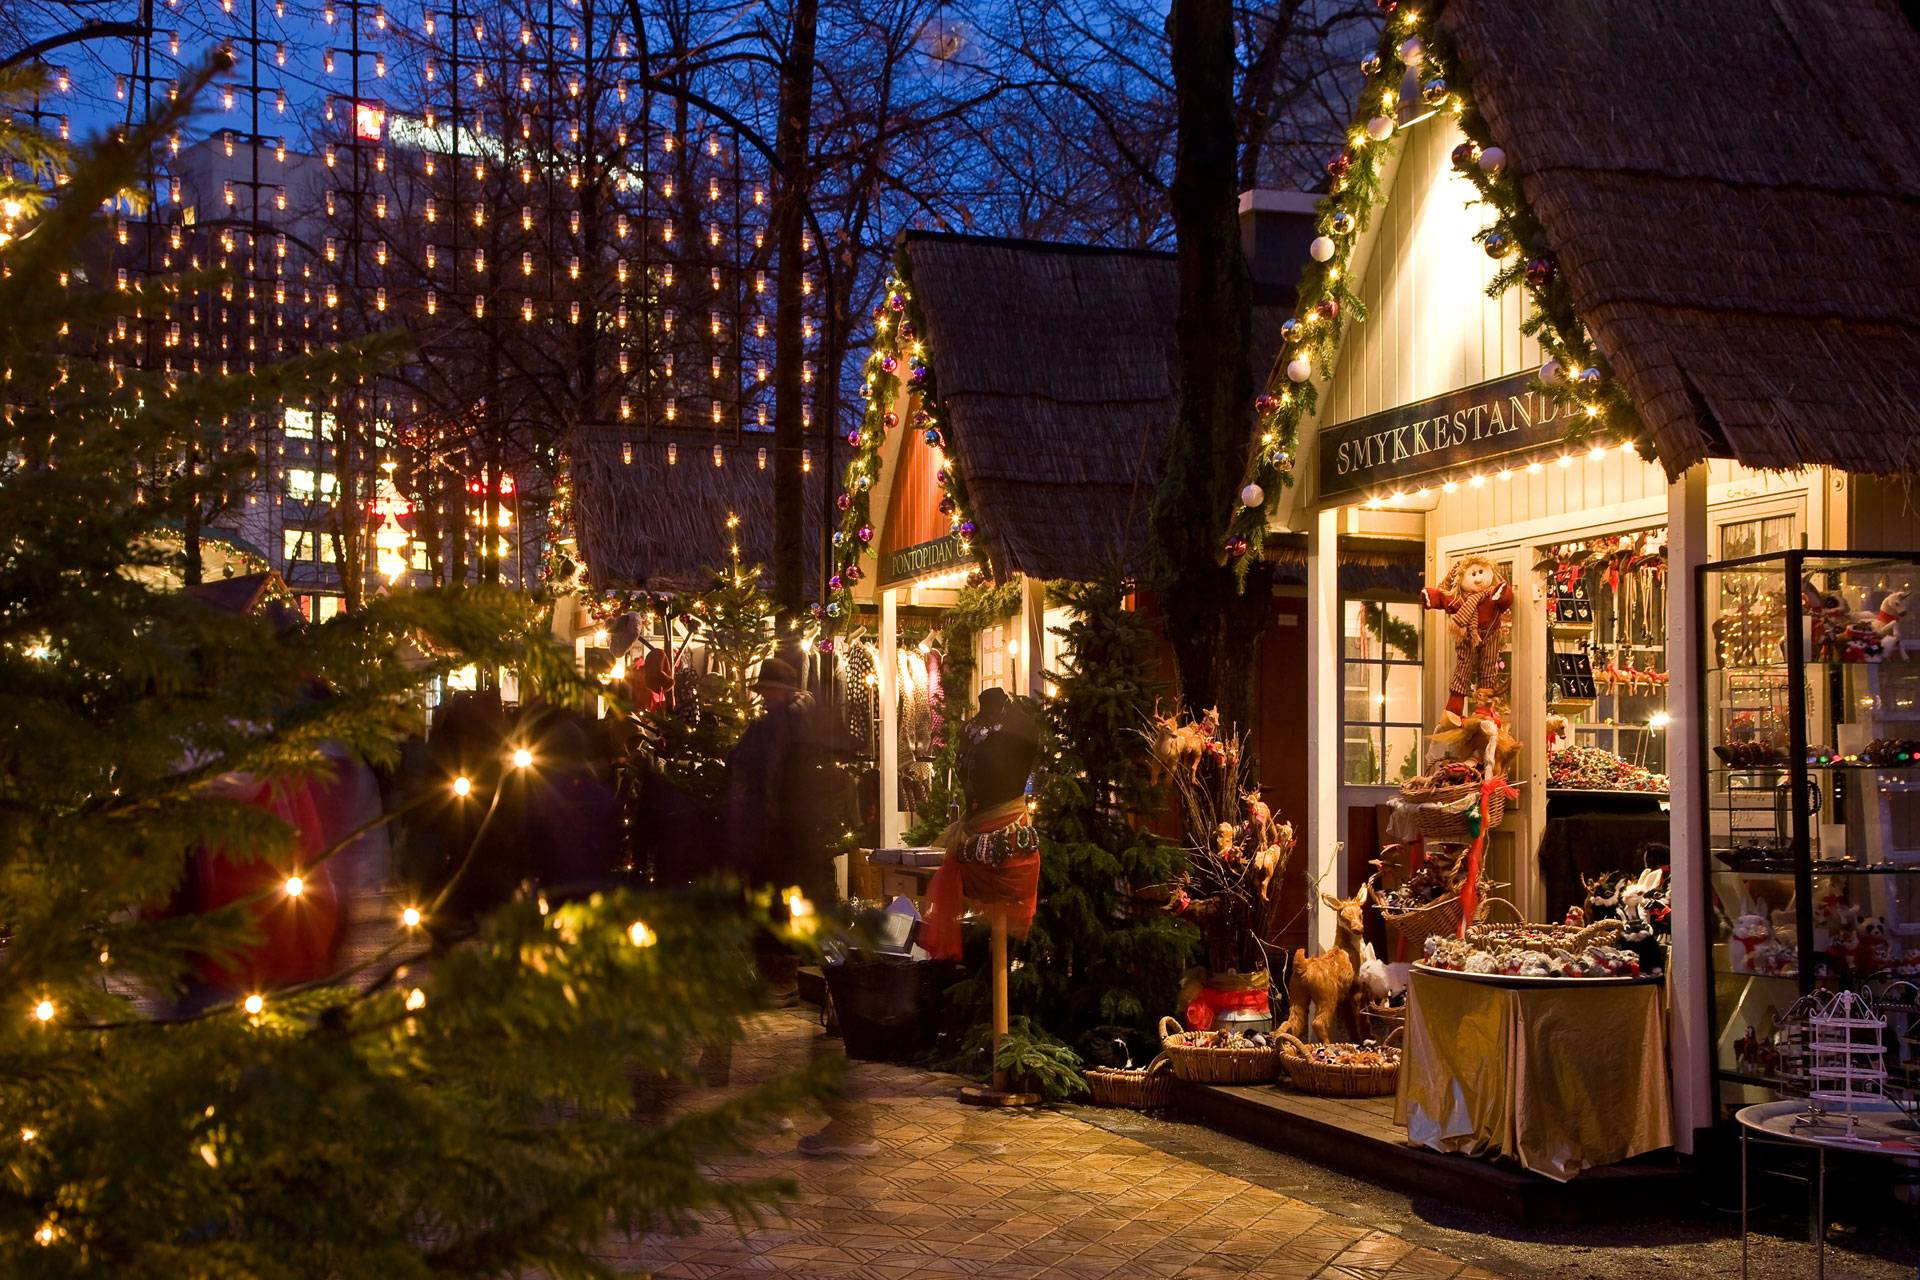 Christmas Markets In South Tyrol, Copenhagen, Helsinki, Tallinn And Barcelona